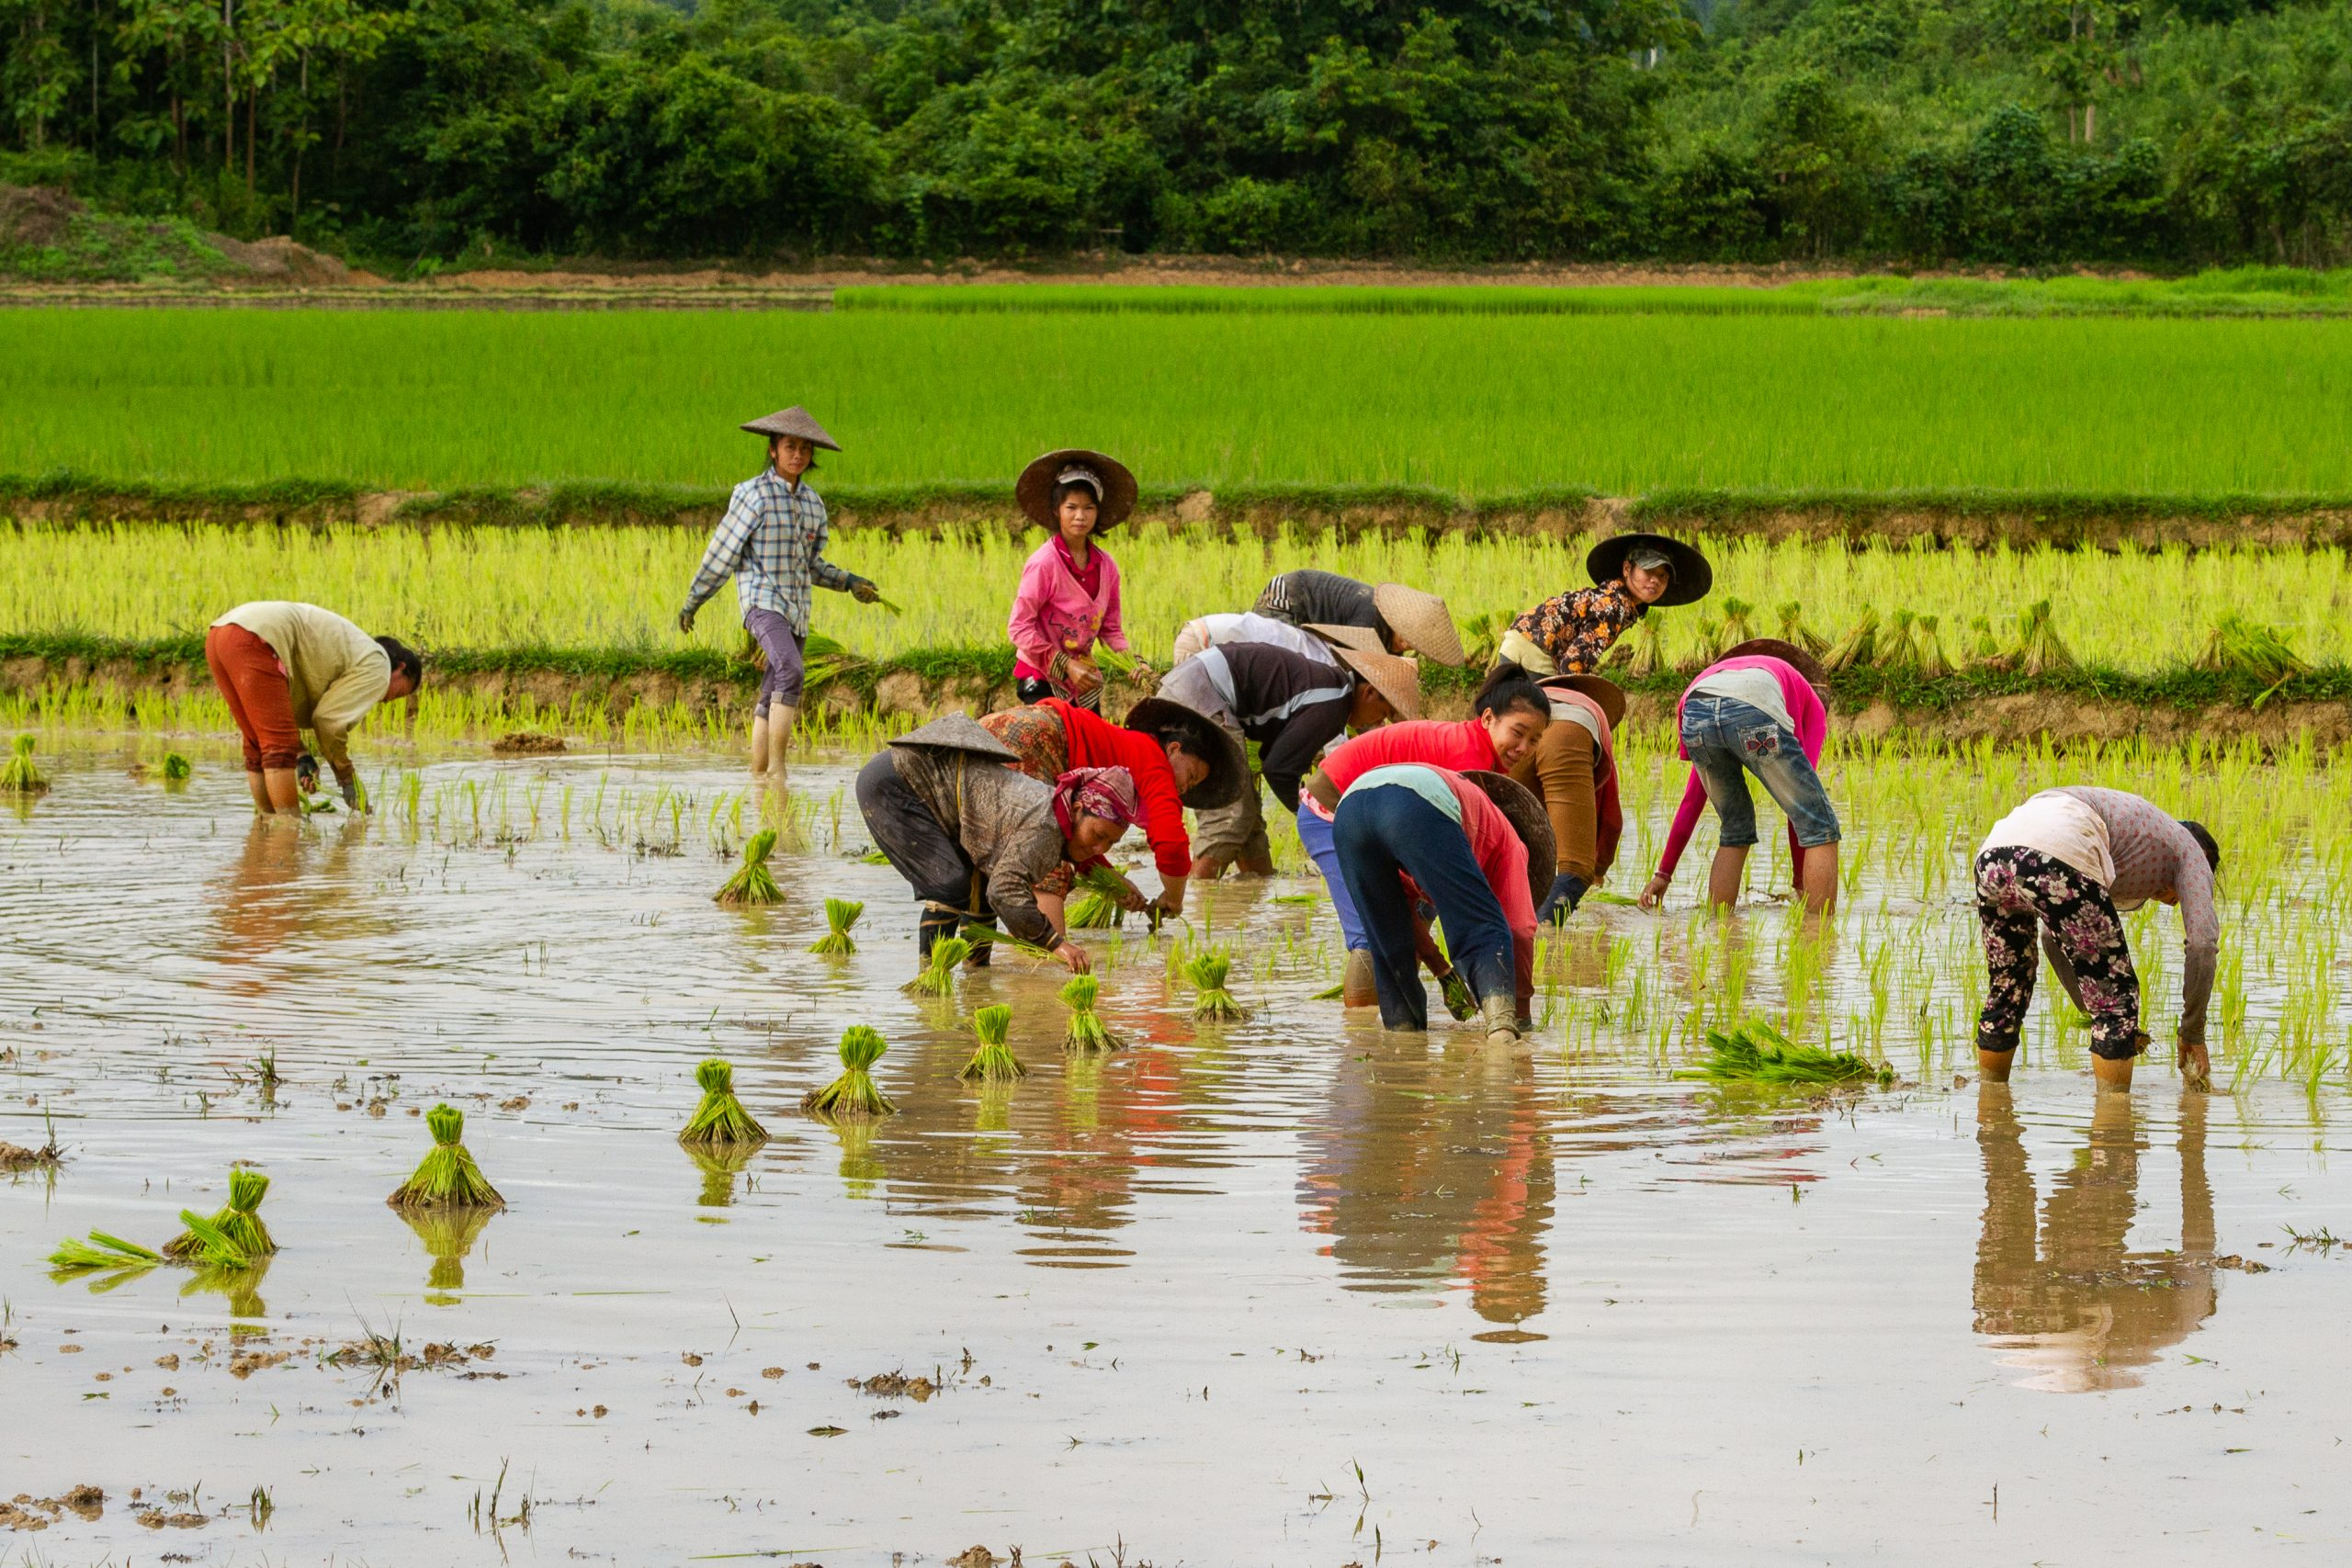 women in a rice paddy in Laos